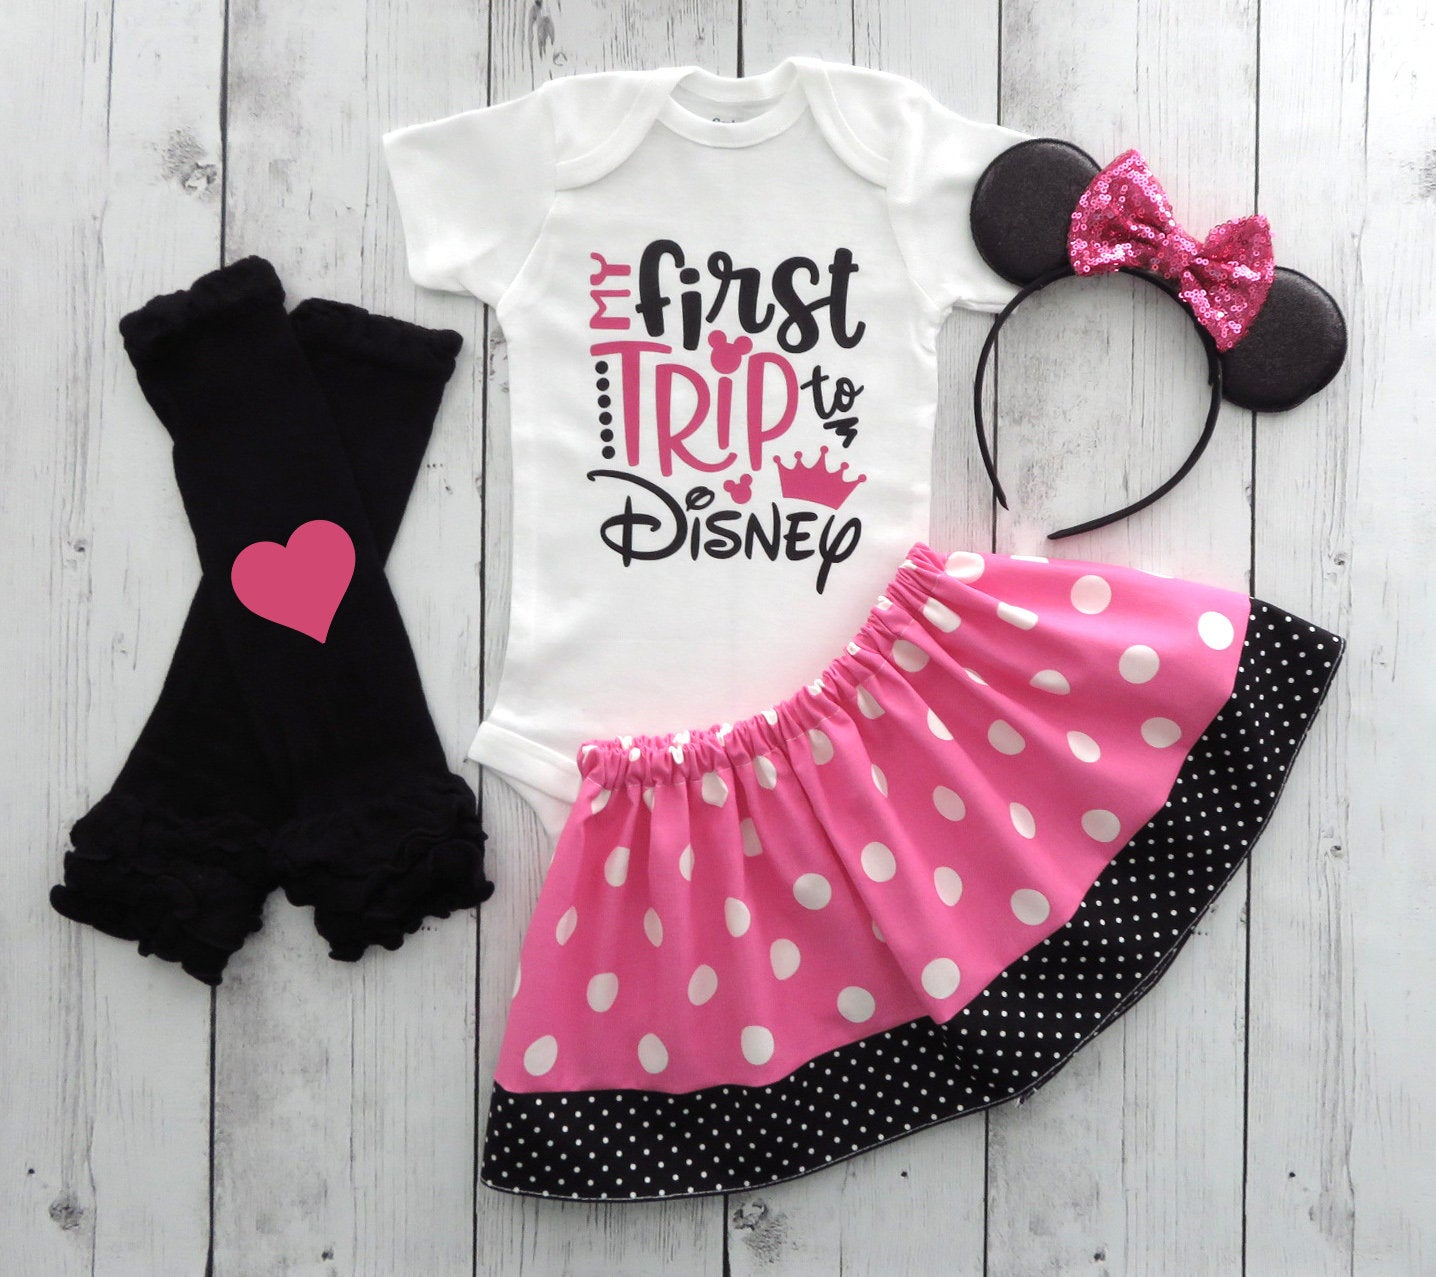 My First Disney Trip Outfit for Girl in pink and black polka dots - minnie ears, first disney trip shirt girl, pink minnie mouse skirt